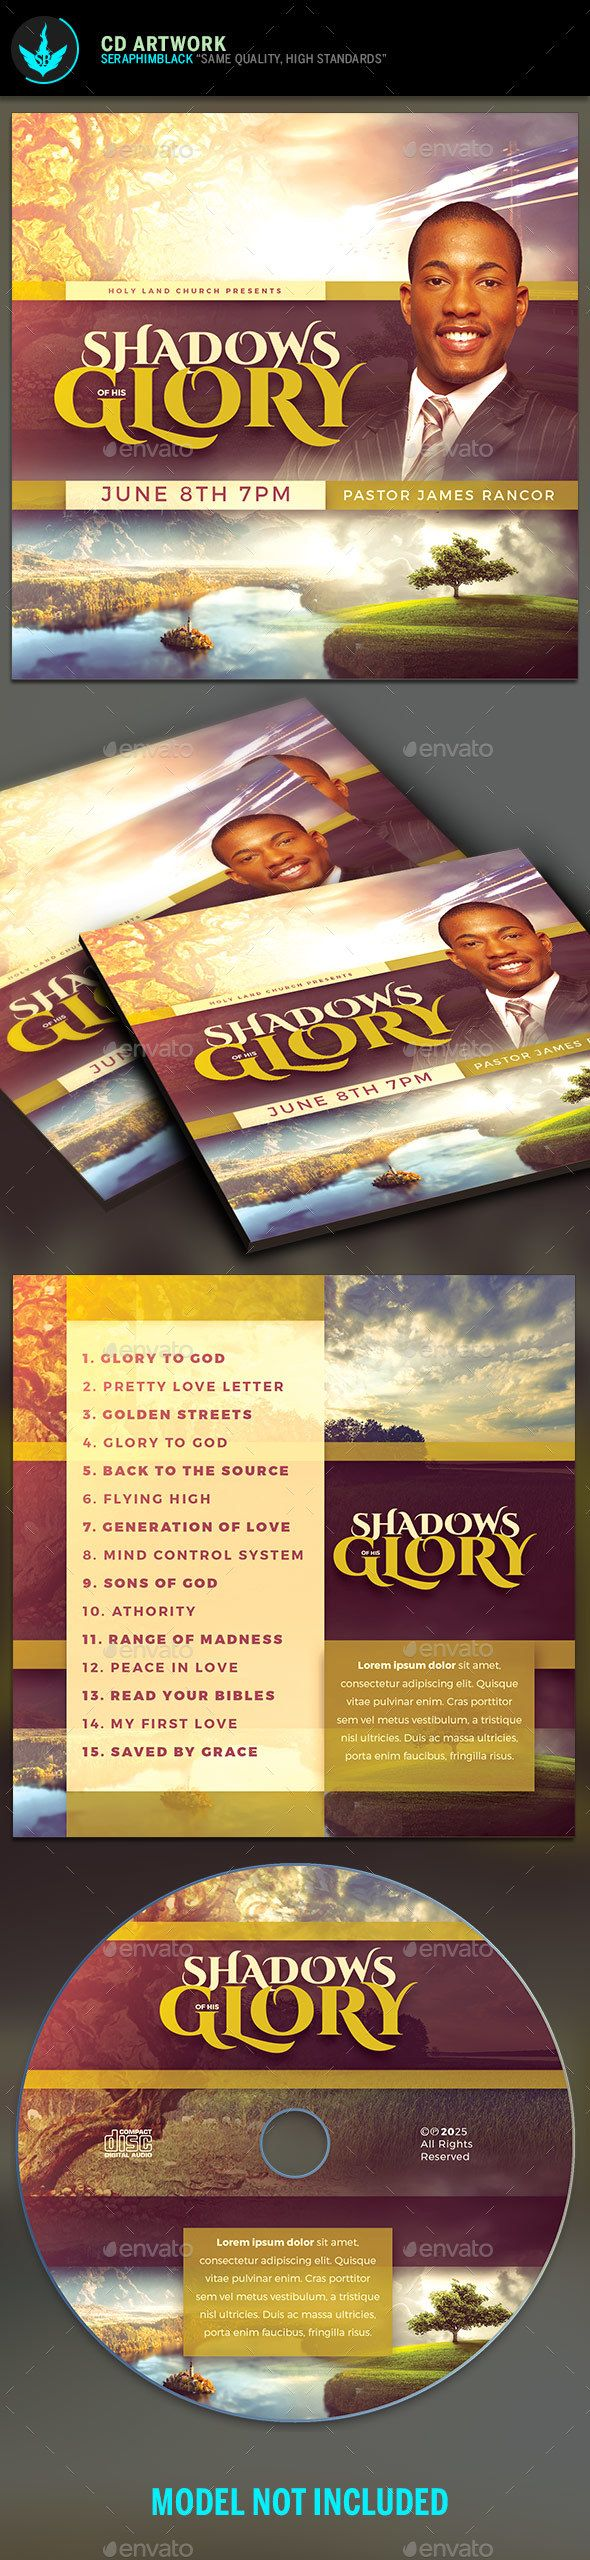 Shadows of His Glory CD Artwork Template - #CD & DVD #Artwork Print #Templates Download here: https://graphicriver.net/item/shadows-of-his-glory-cd-artwork-template/20307383?ref=alena994